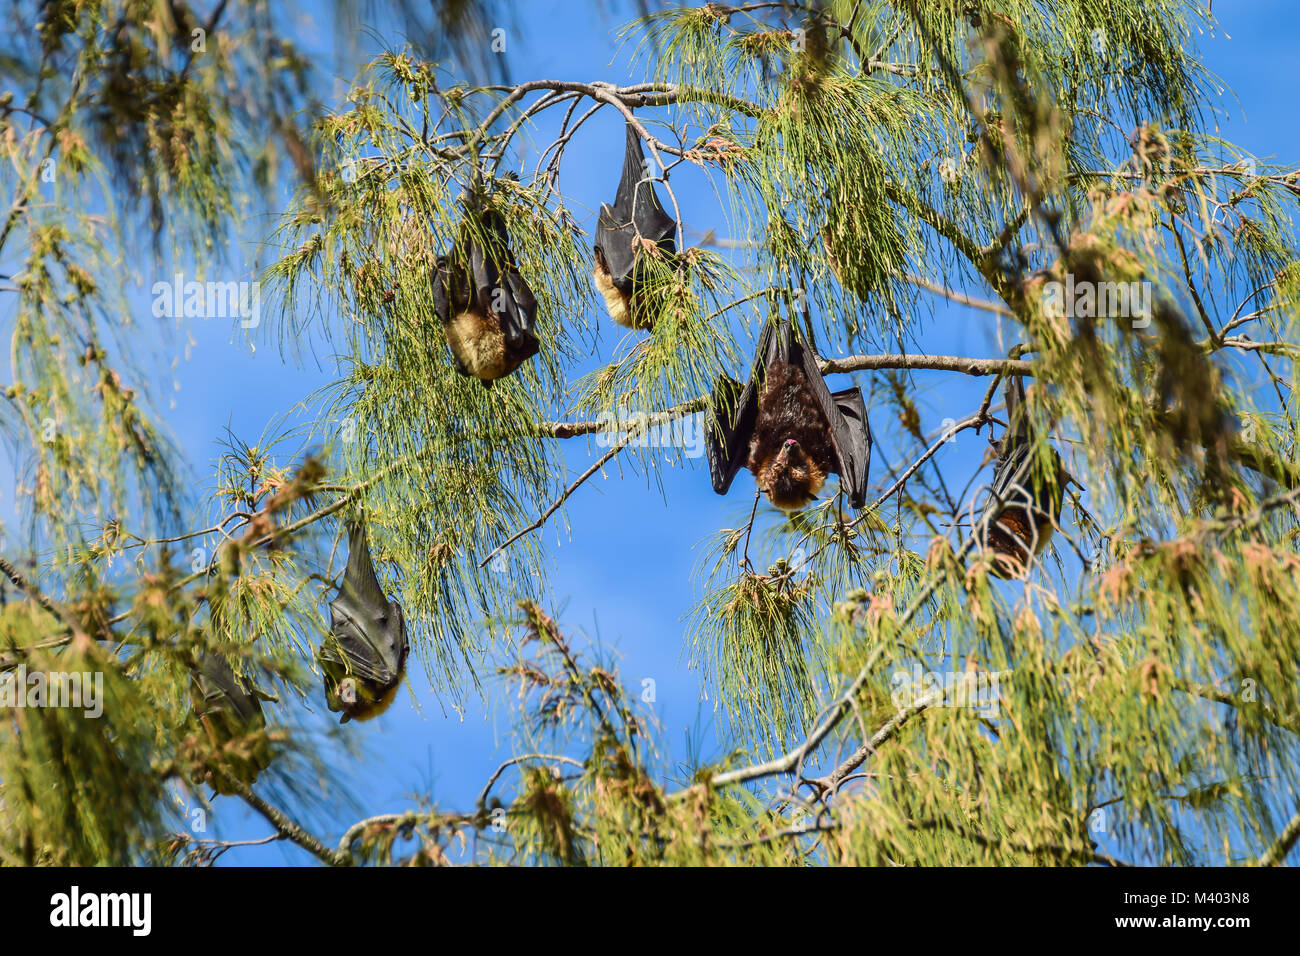 Pacific flying fox roost sleeping upside down in a tree during the day - Stock Image